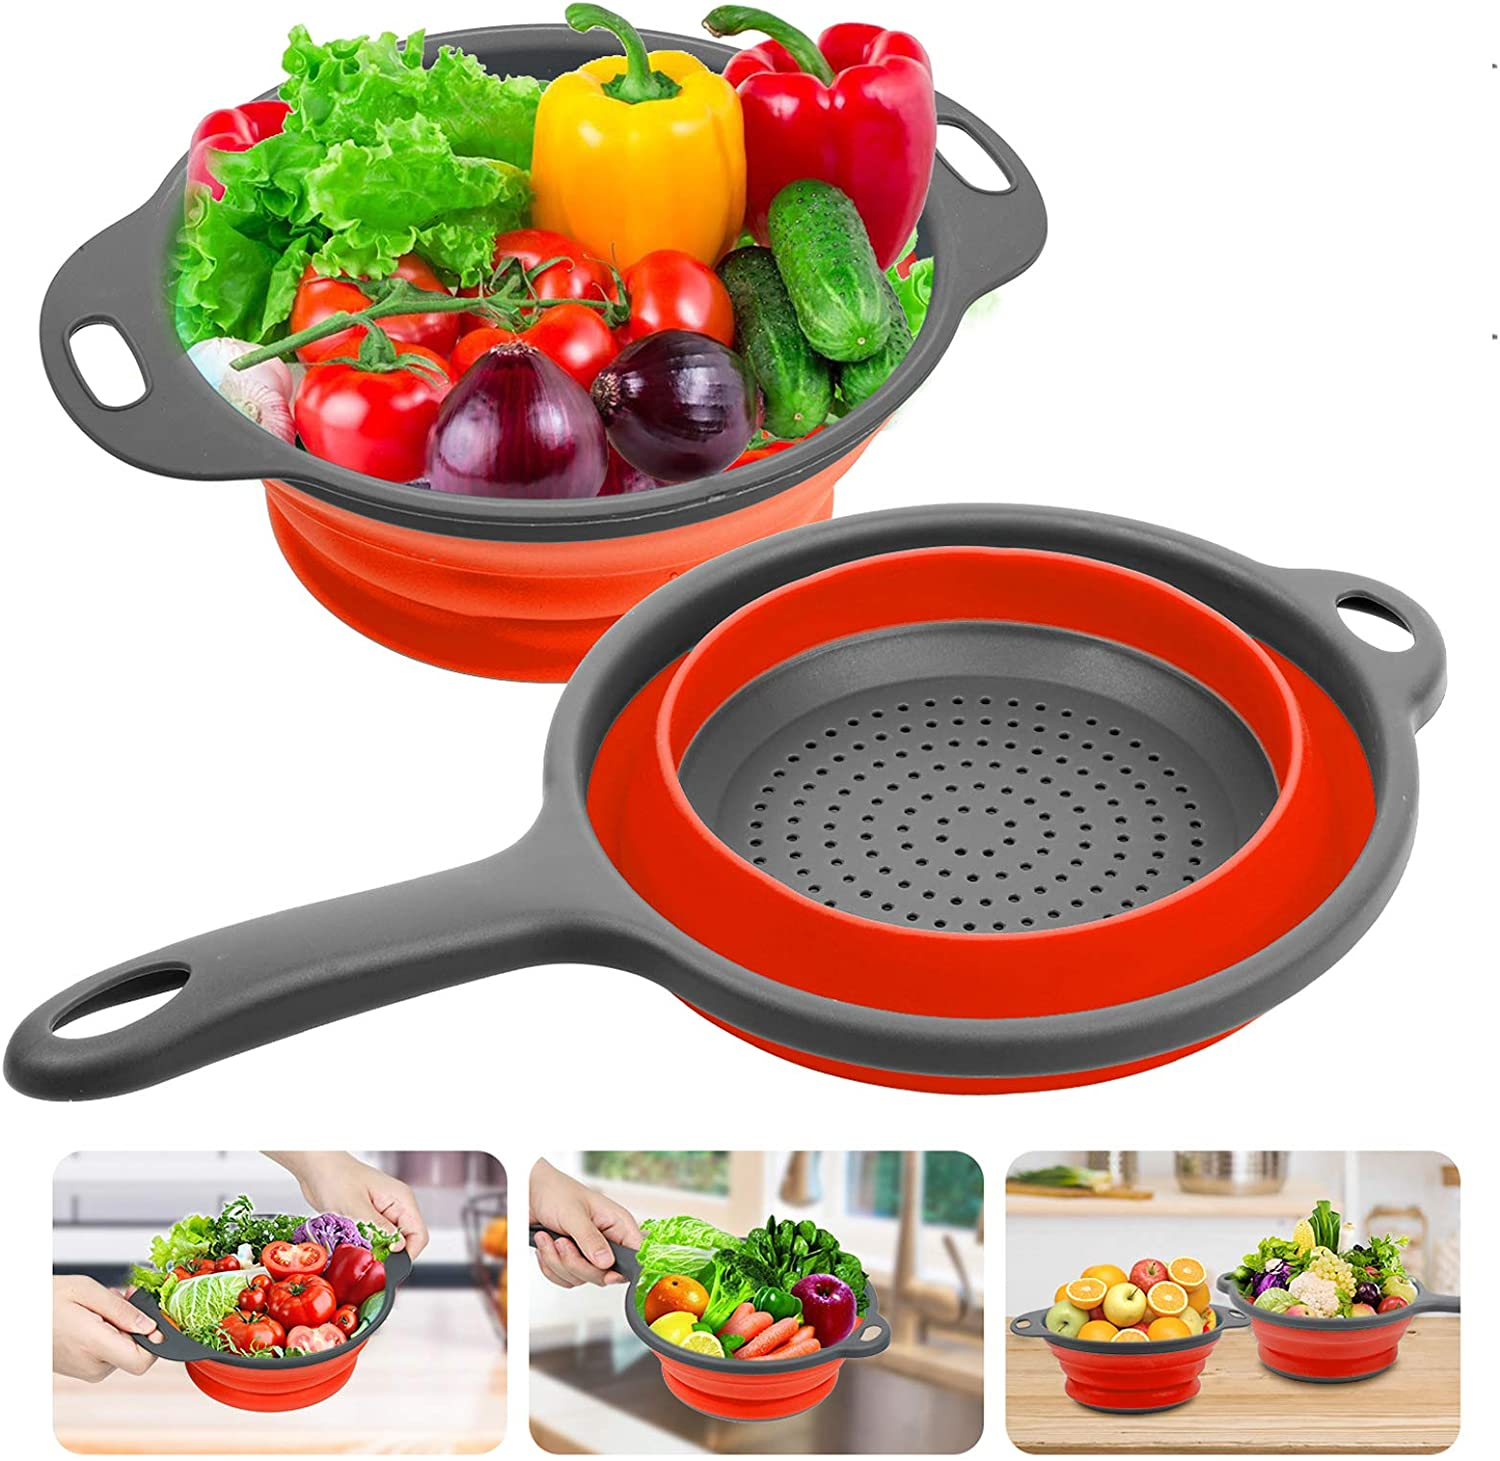 Silicone Collapsible Colanders and Strainers (2 Piece Set -Red), Rareccy Kitchen Colander with Handles Diameter Sizes 8